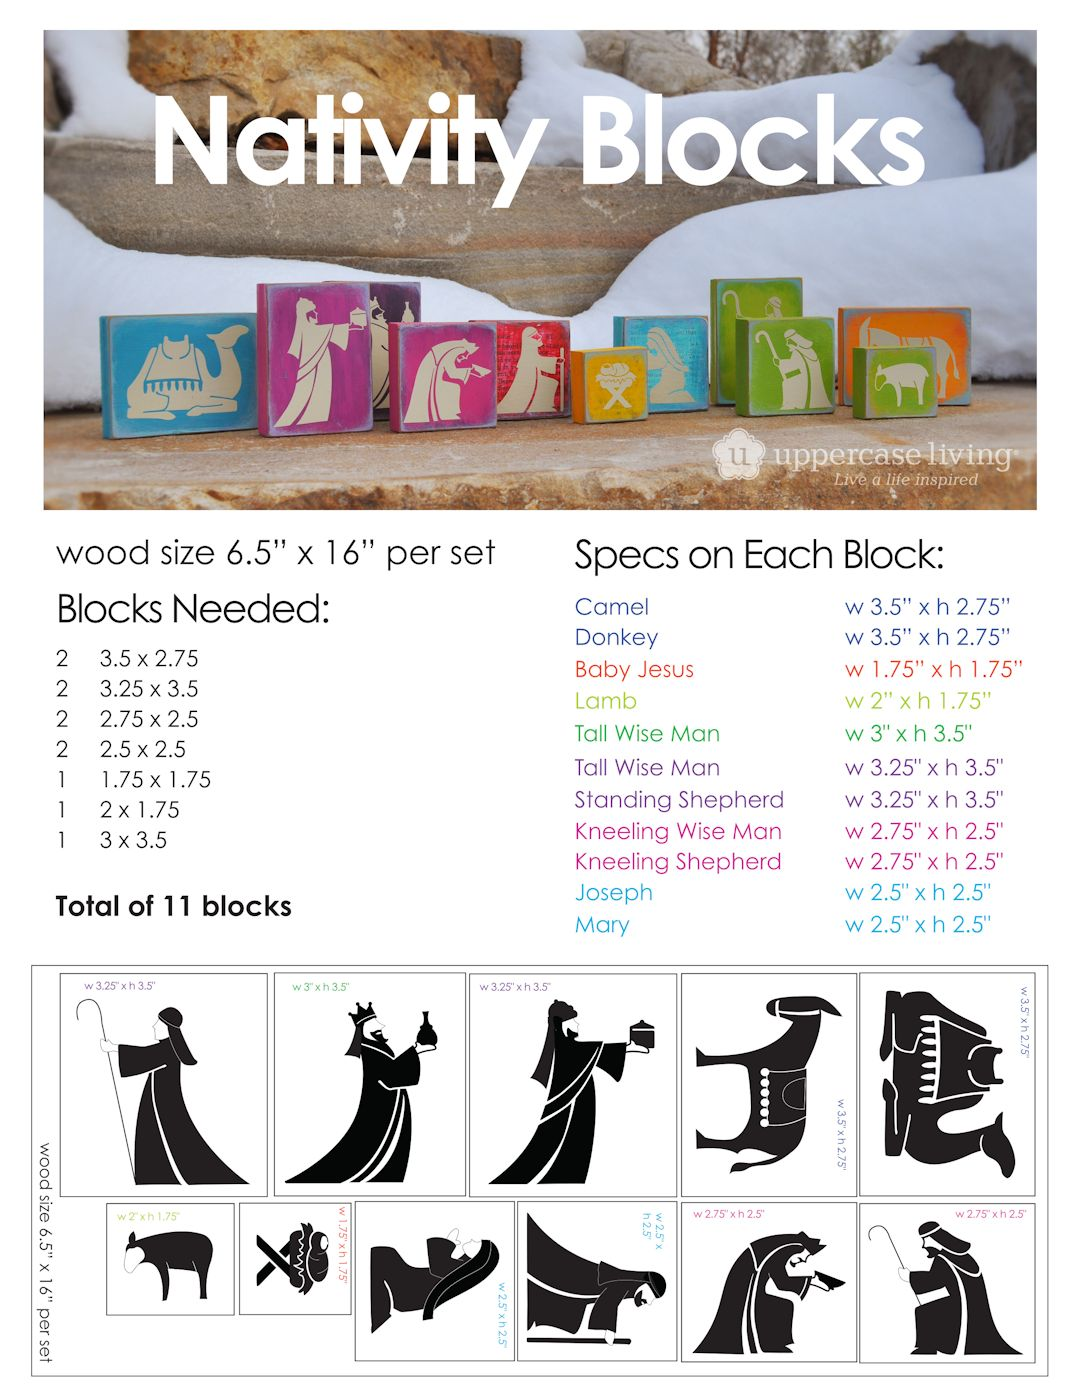 Nativity Blocks Project Instruction Sheet